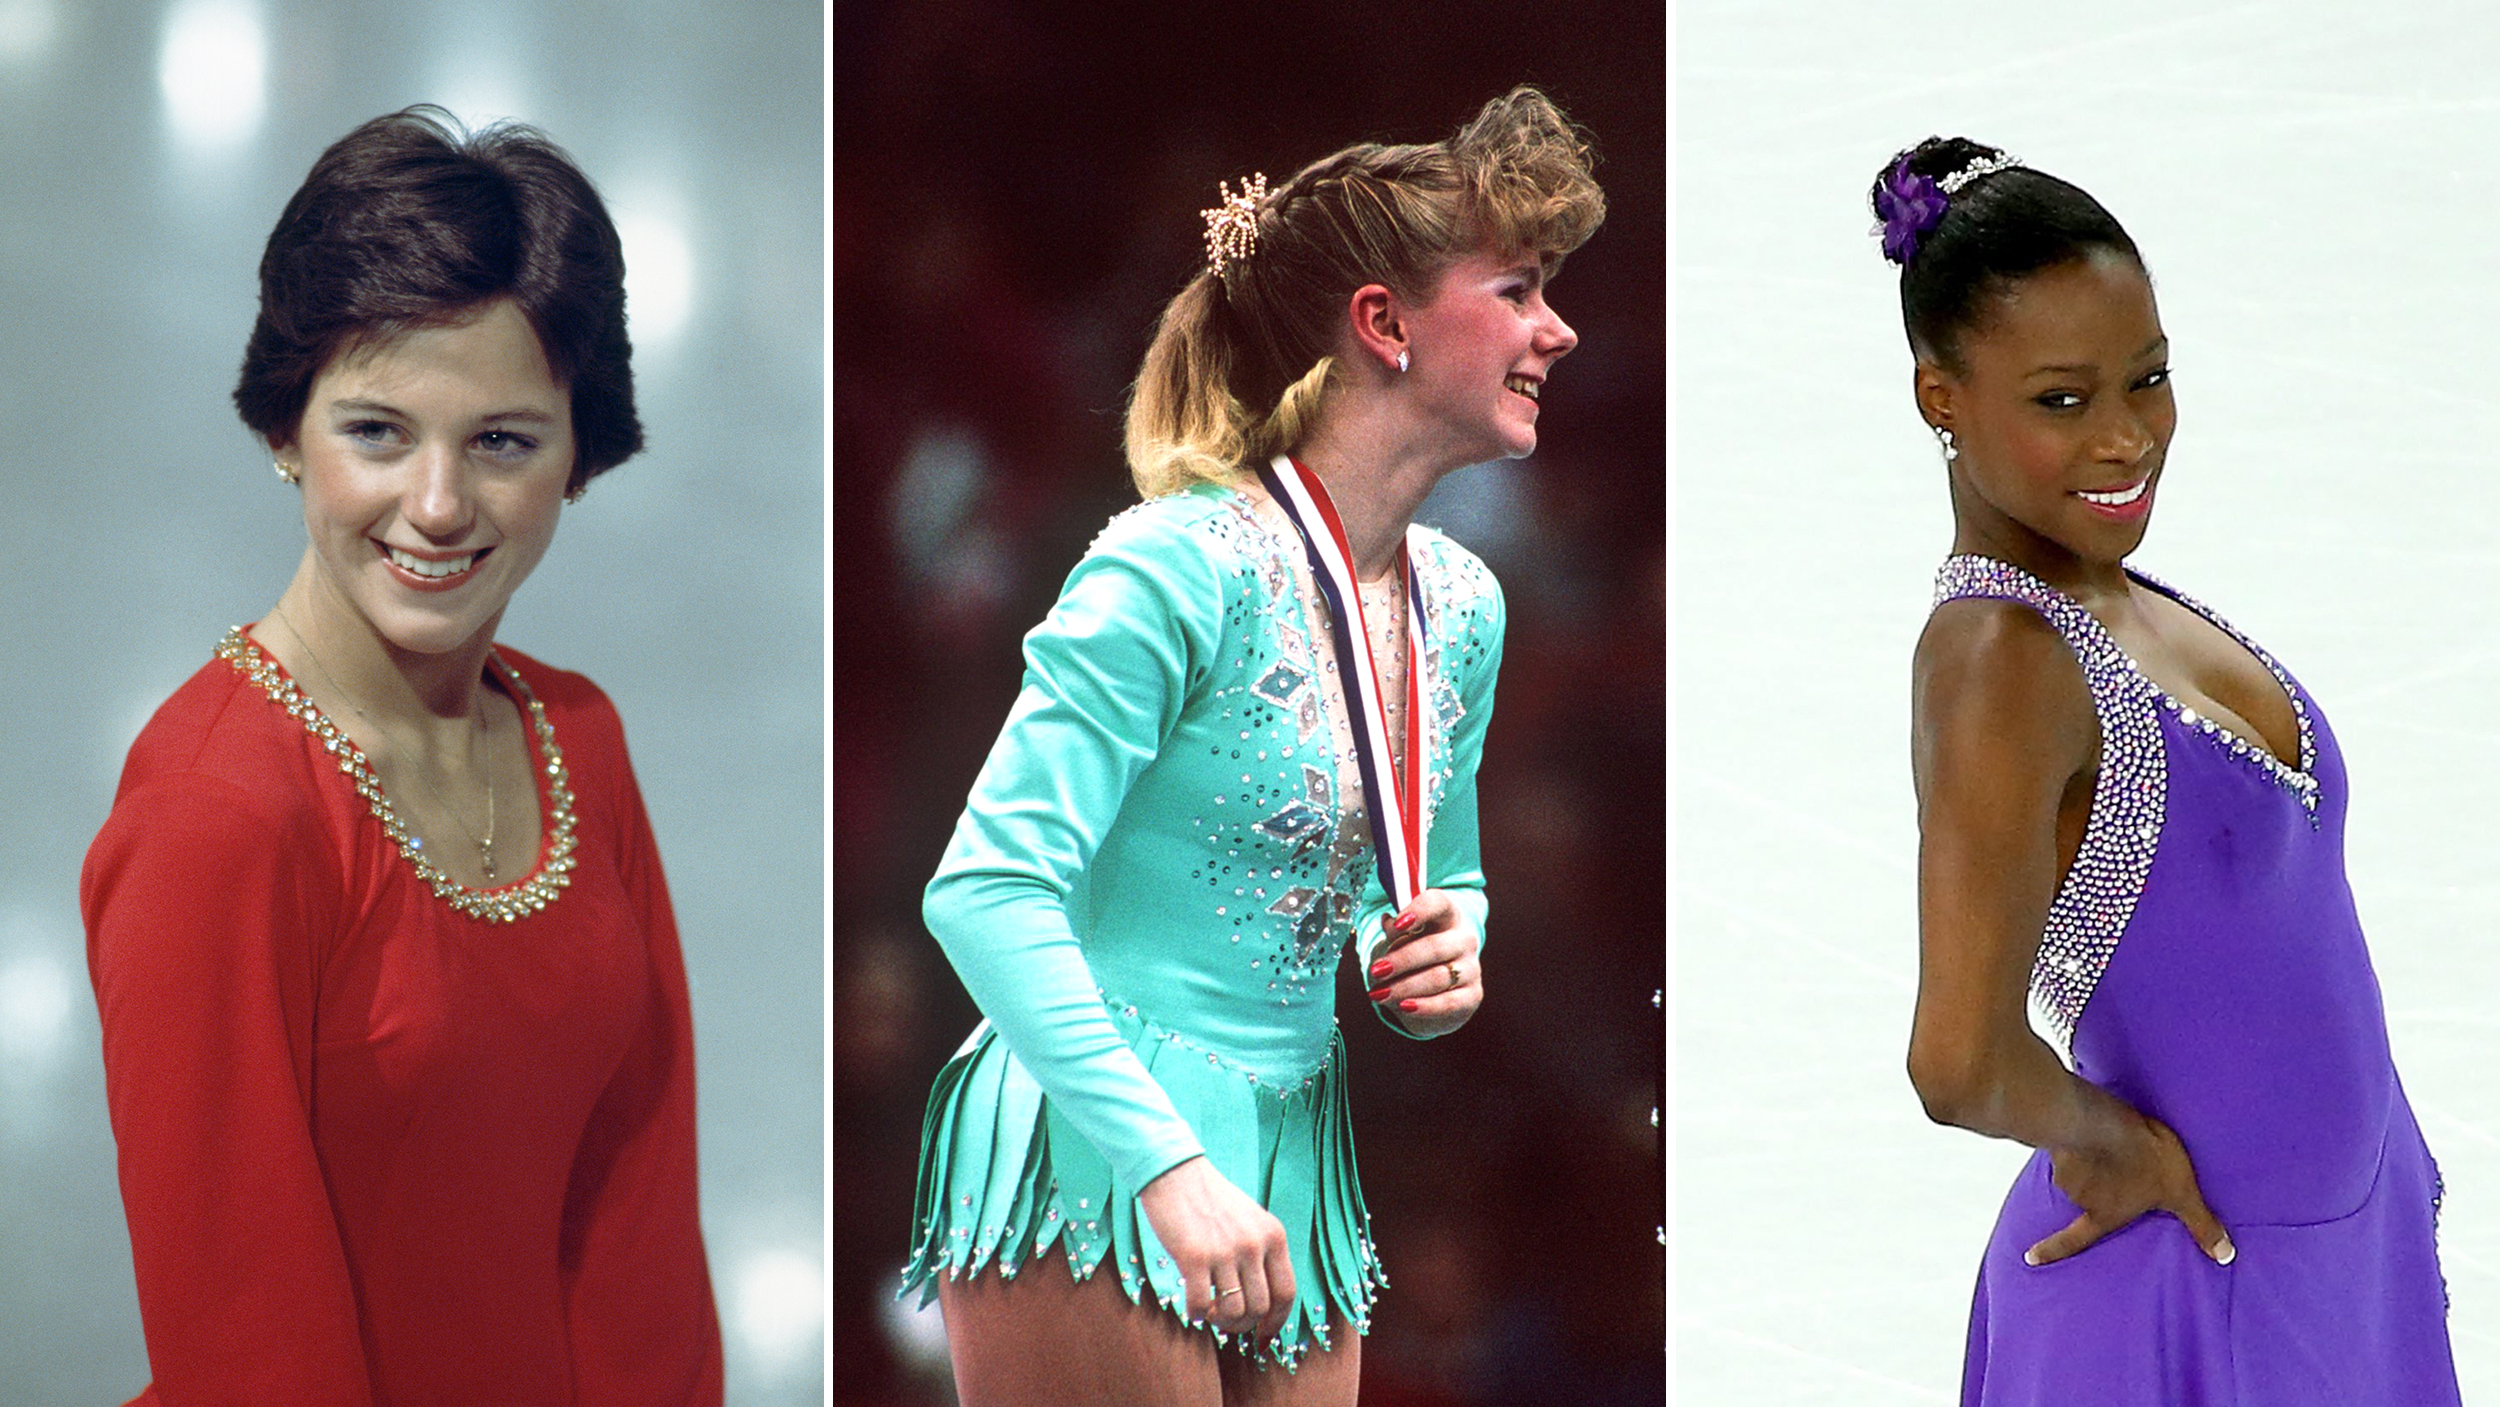 buns! bobs! mullets! olympic skating hair by the decade - today